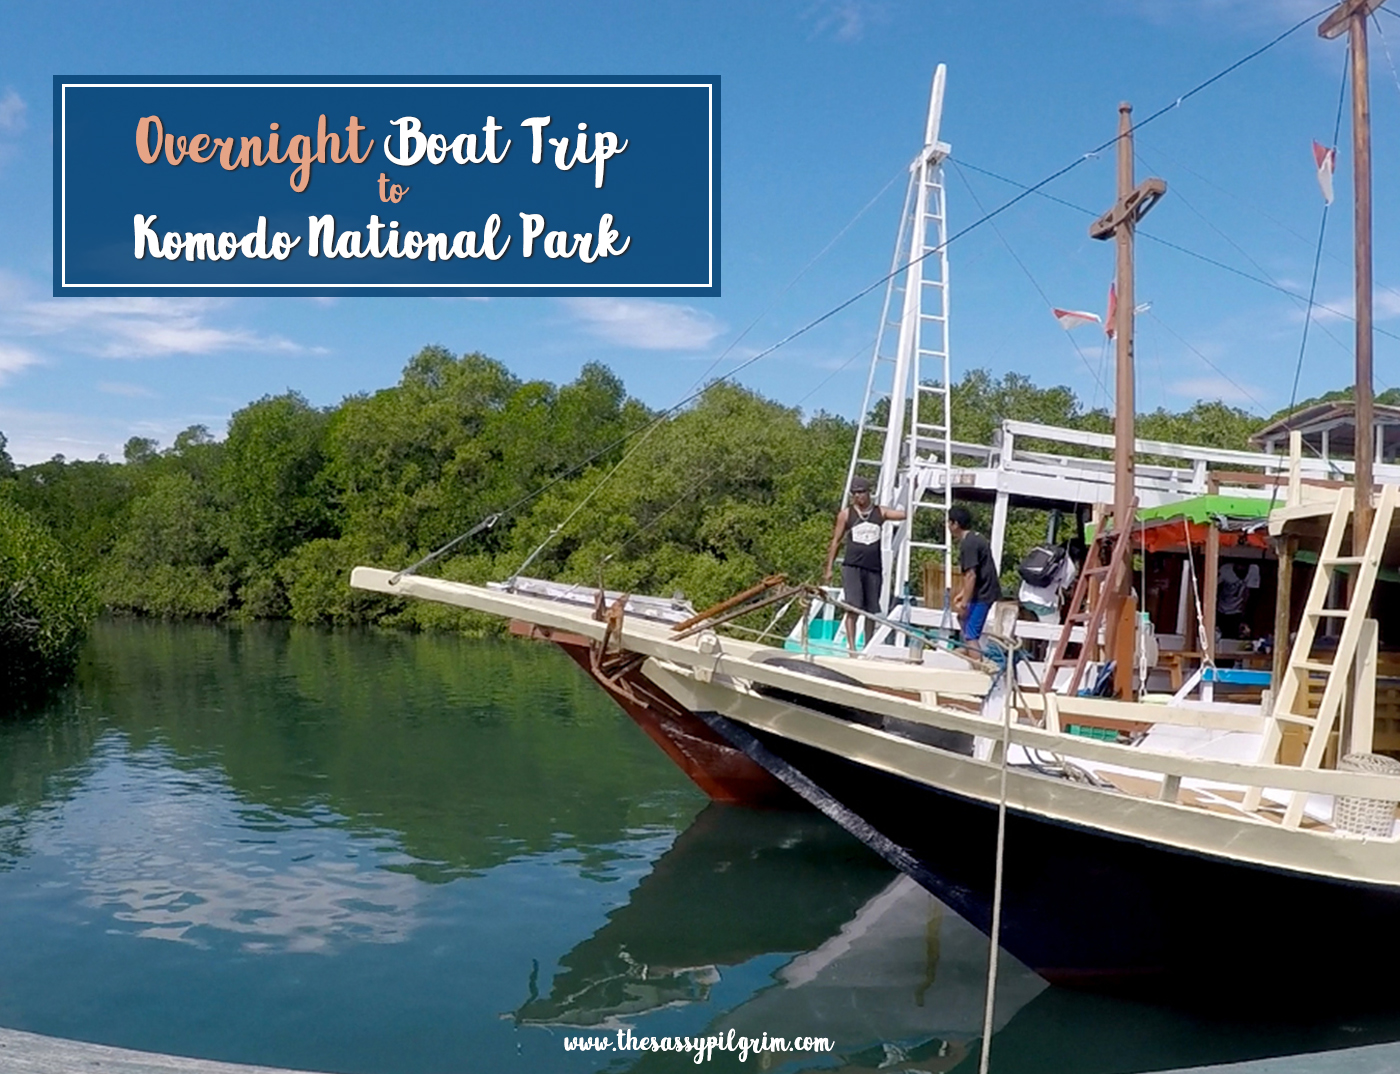 OVERNIGHT BOAT TRIP TO KOMODO NATIONAL PARK